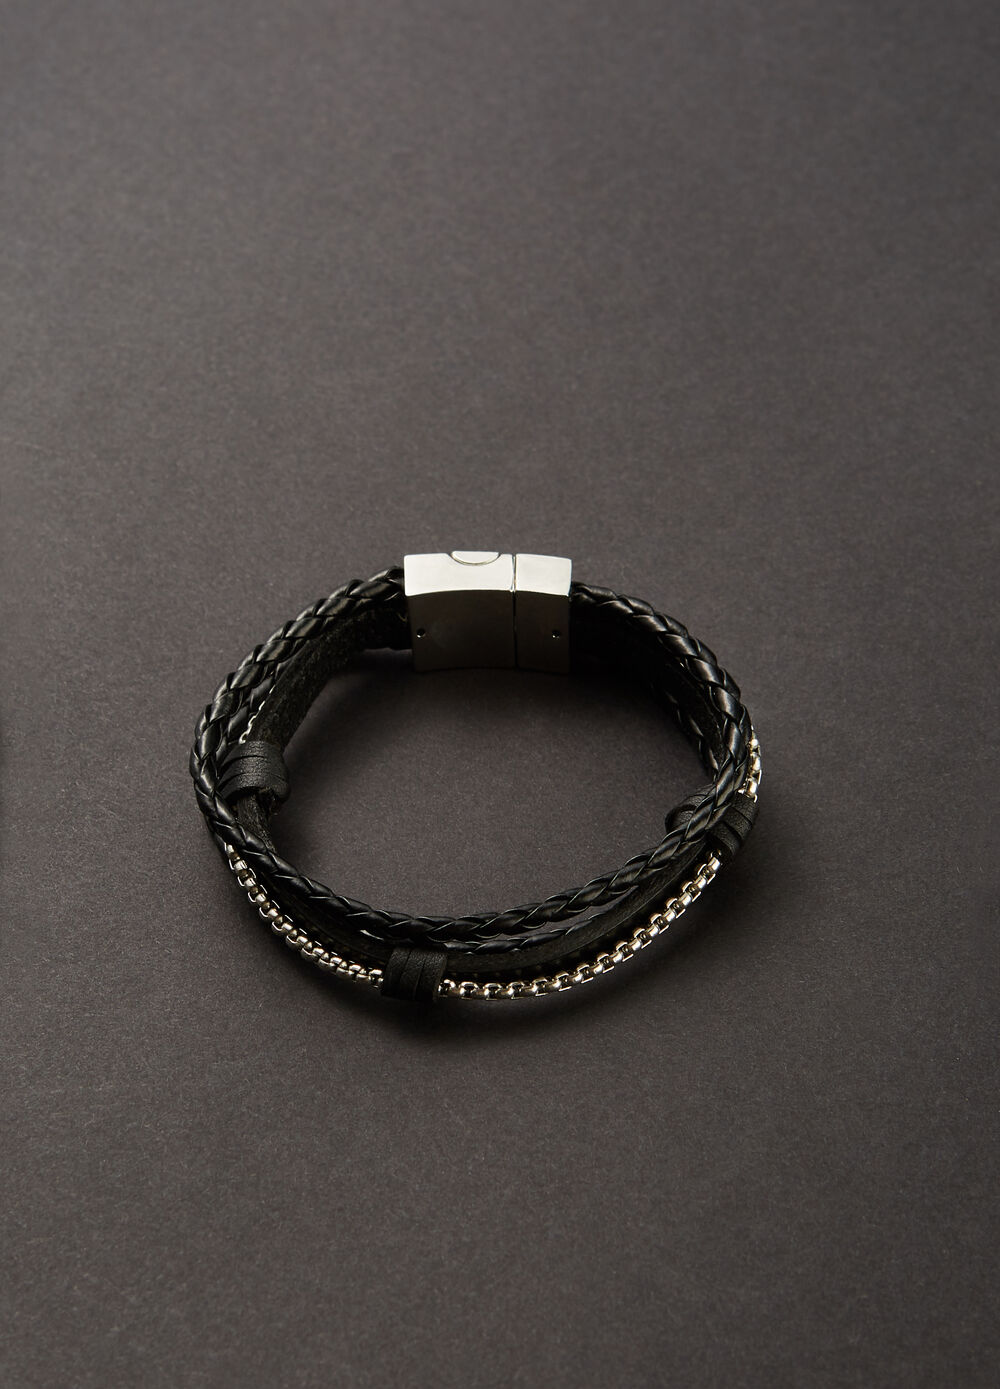 Bracelet with woven threads and chain insert